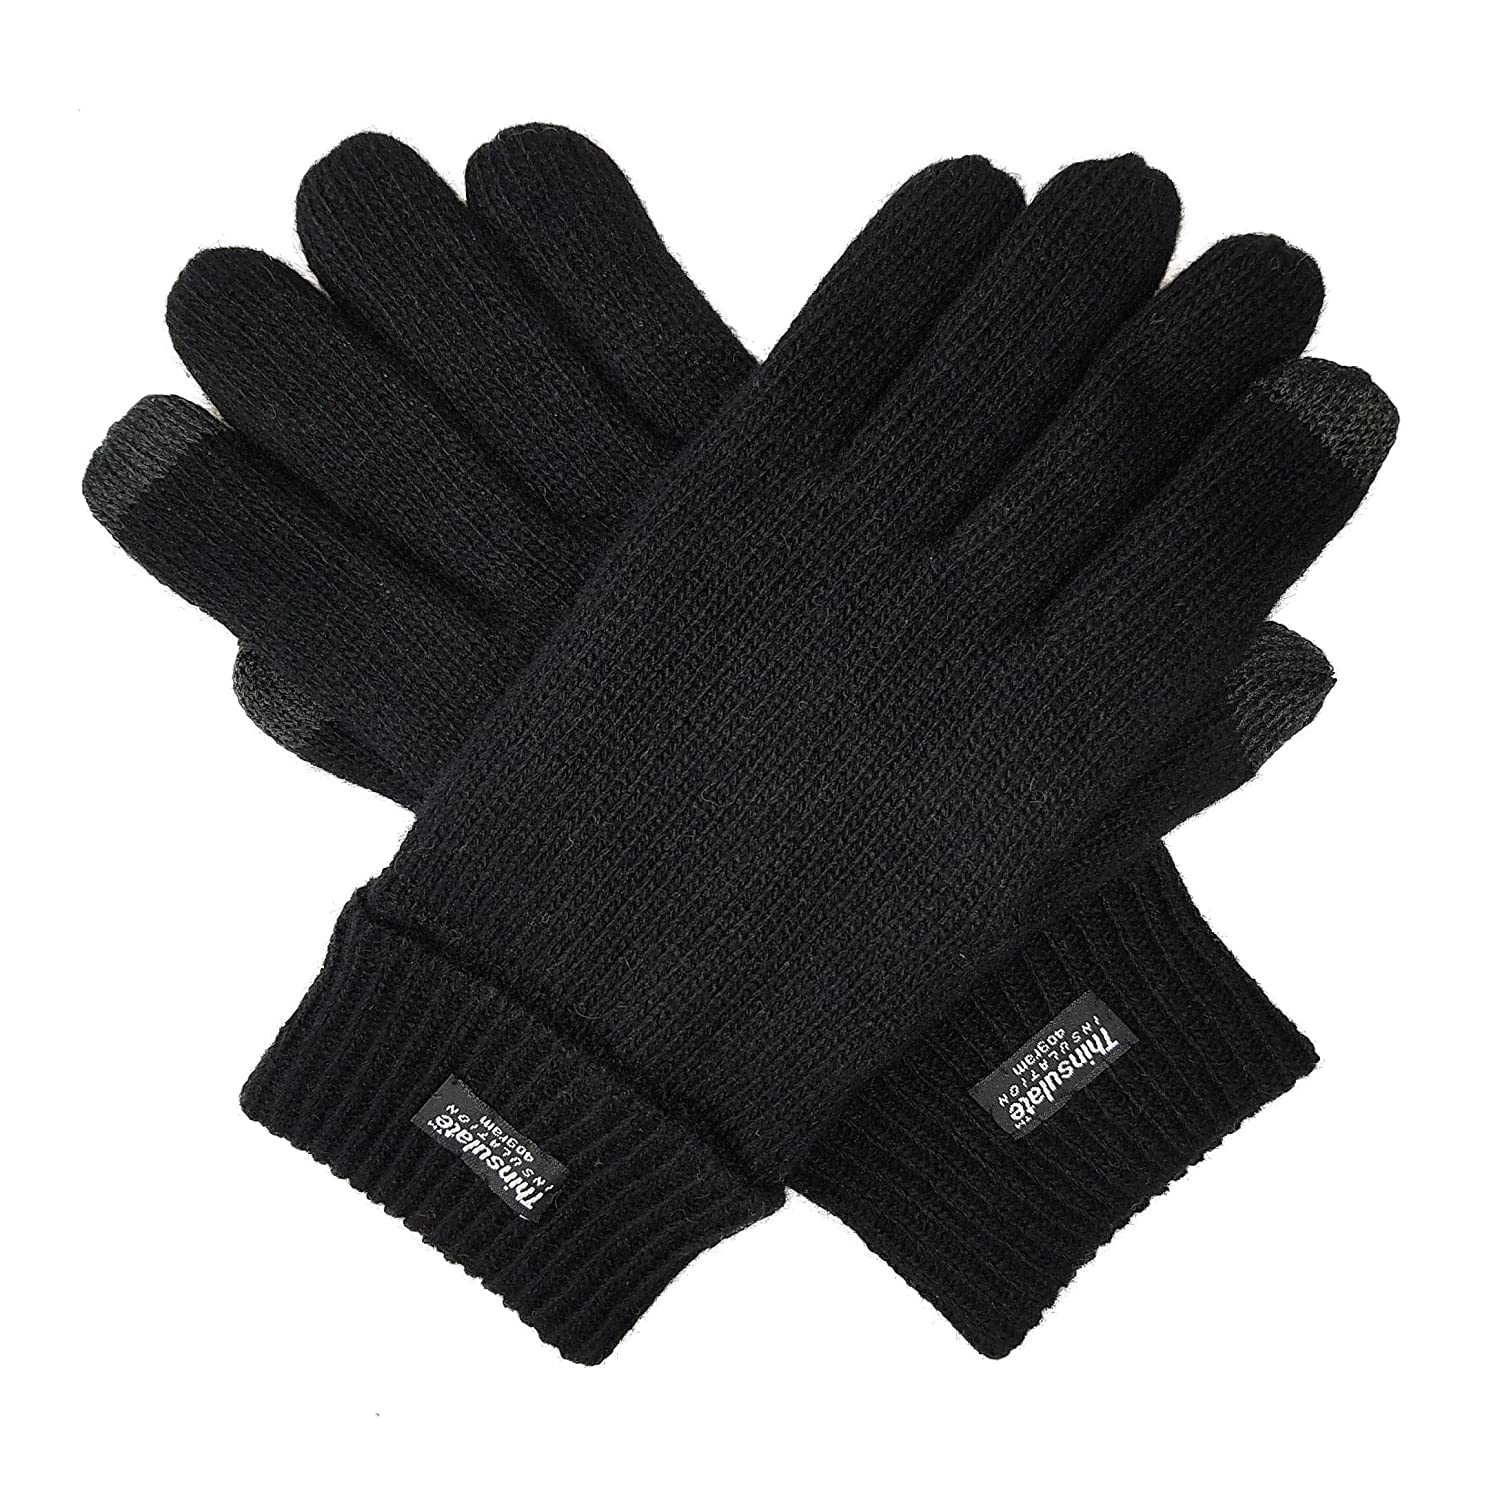 Bruceriver Men's Pure Wool Knitted Gloves with Thinsulate Lining Size S/M (Anthra) HESHI BR16G115-Anthra Size S/M